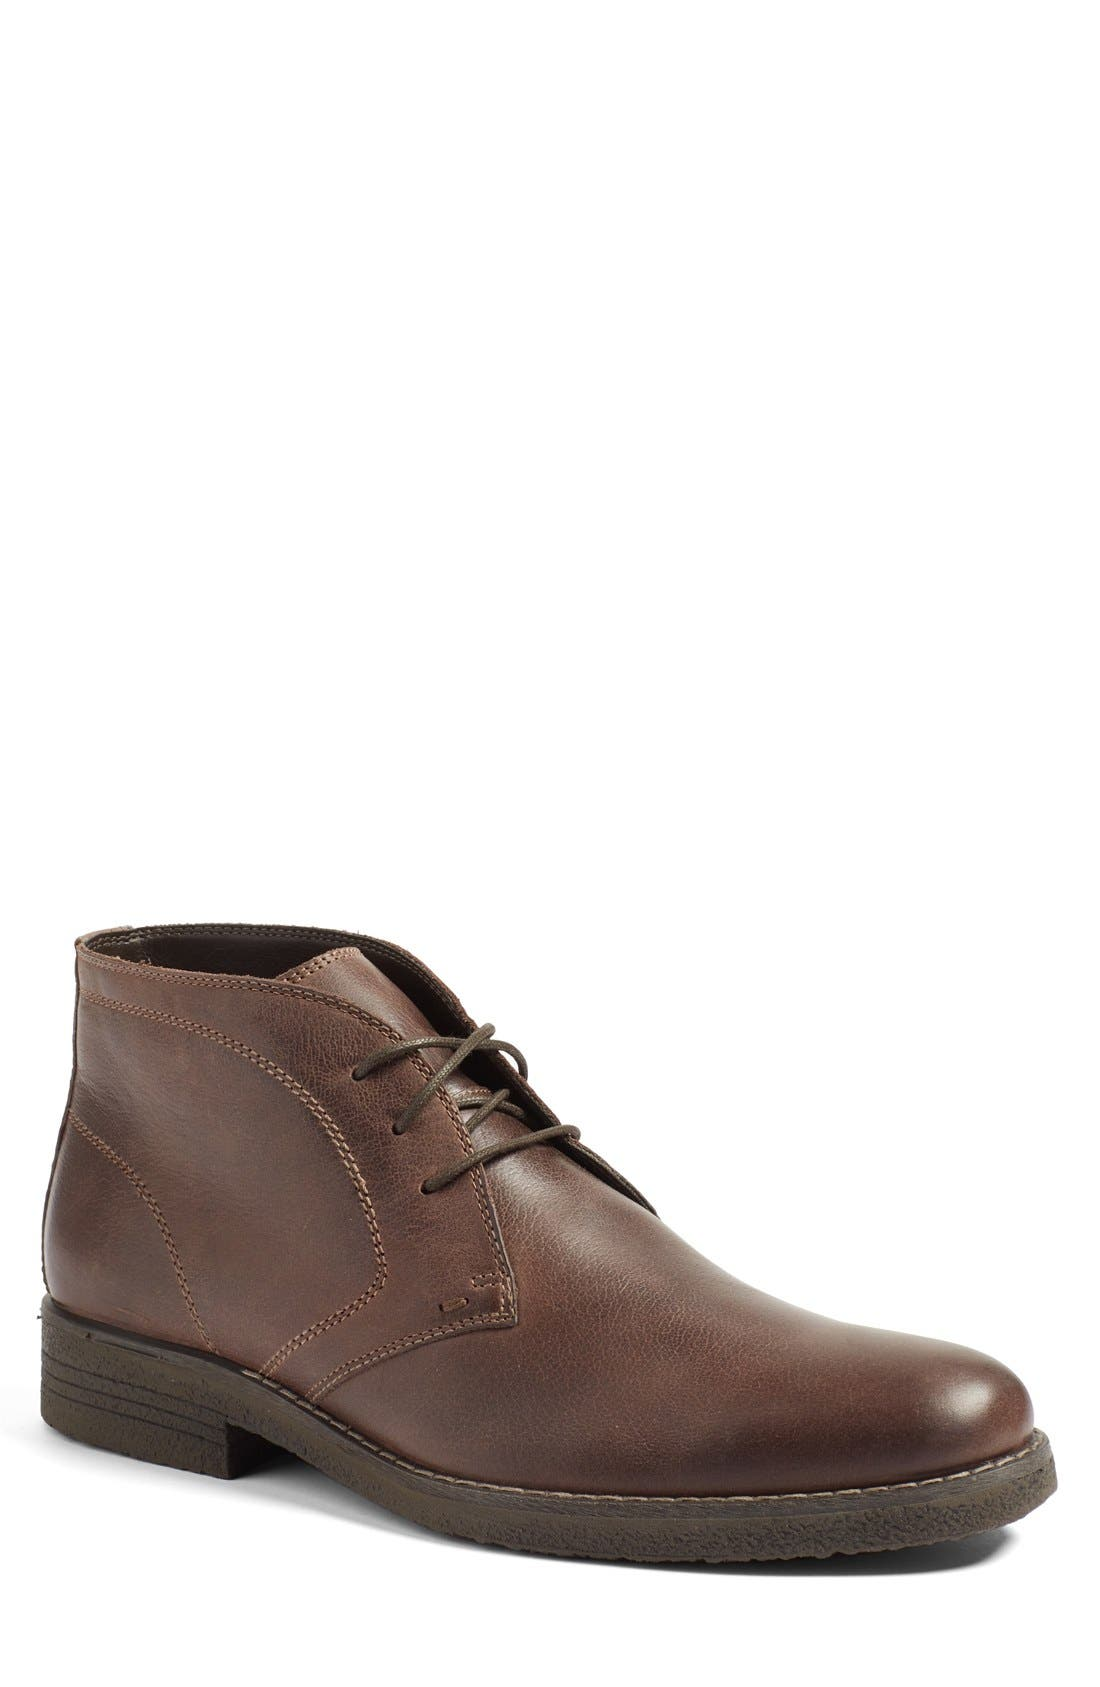 'Tyler' Chukka Boot,                             Main thumbnail 2, color,